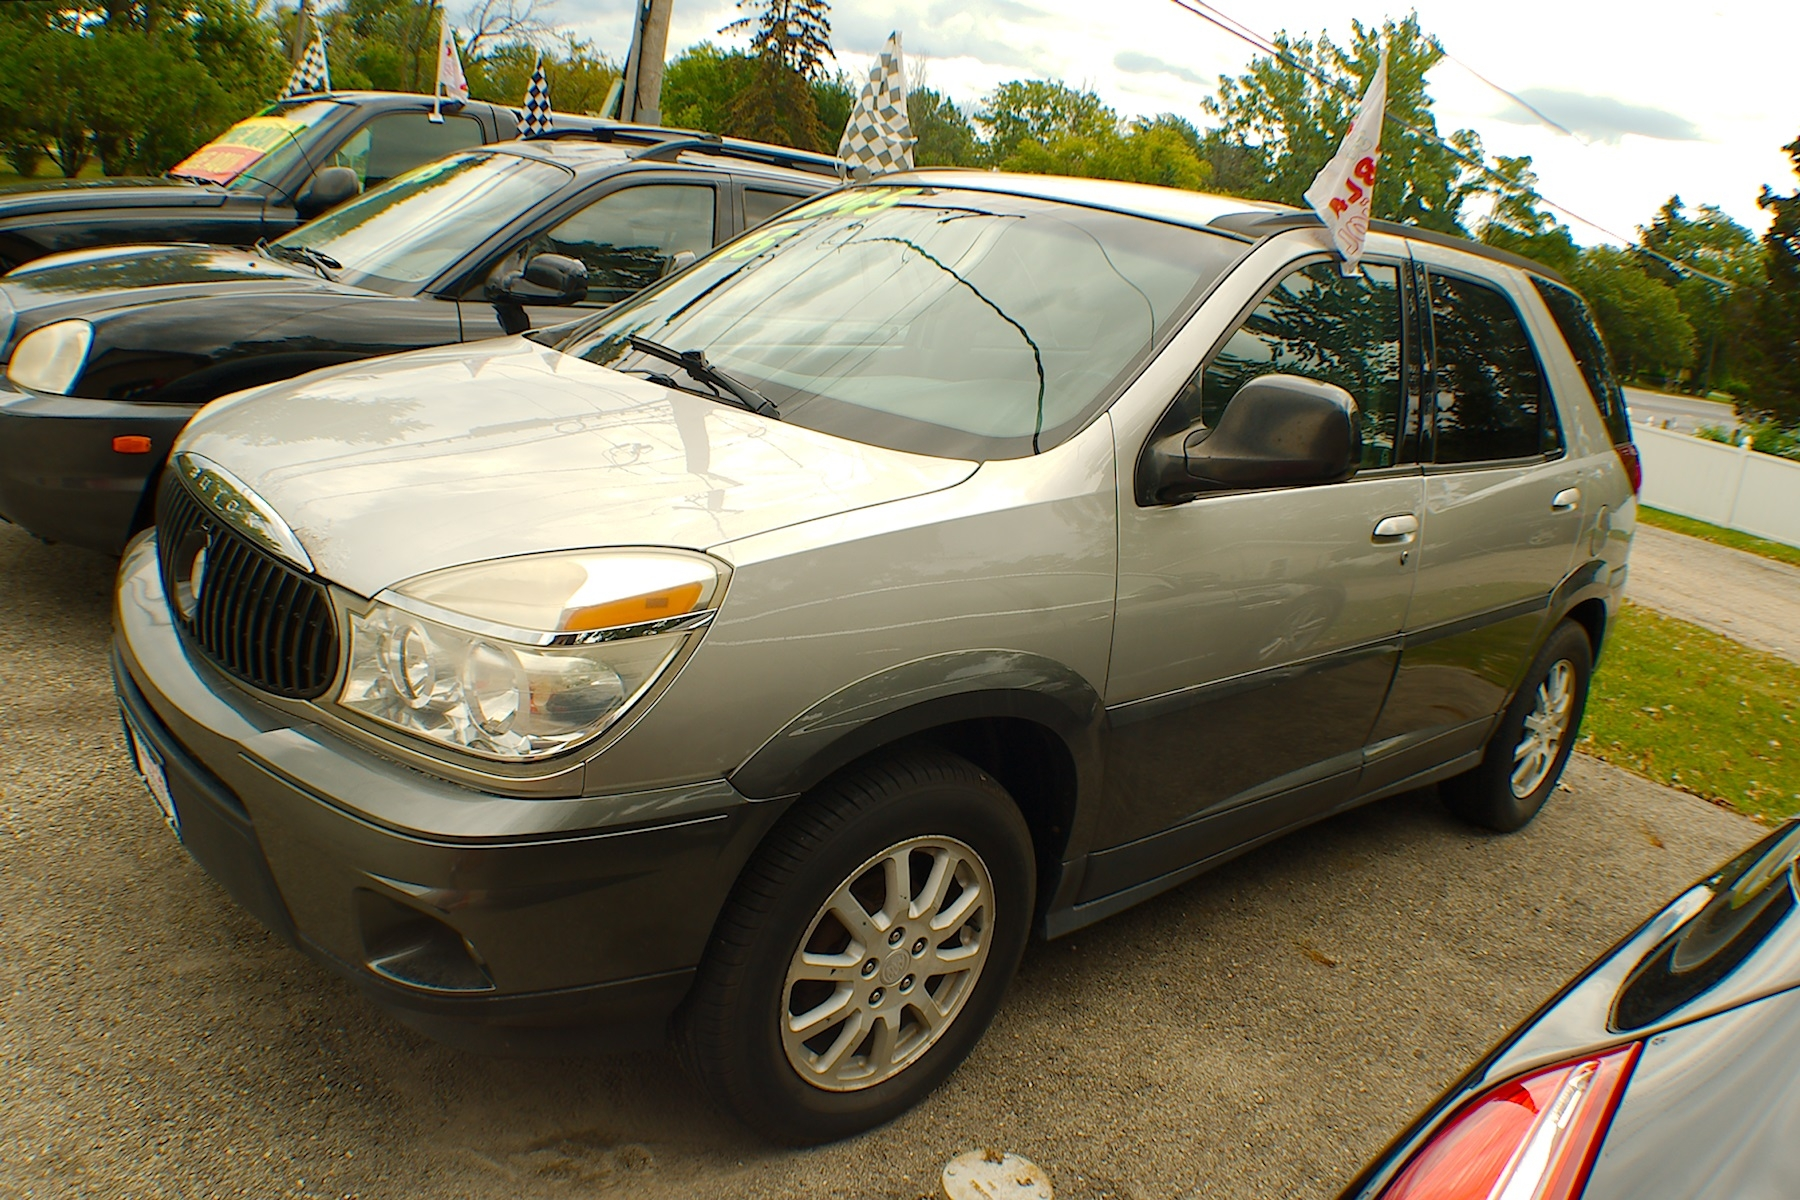 2005 Buick Rendezvous Silver Used SUV Sale Antioch Zion Waukegan Lake County Illinois